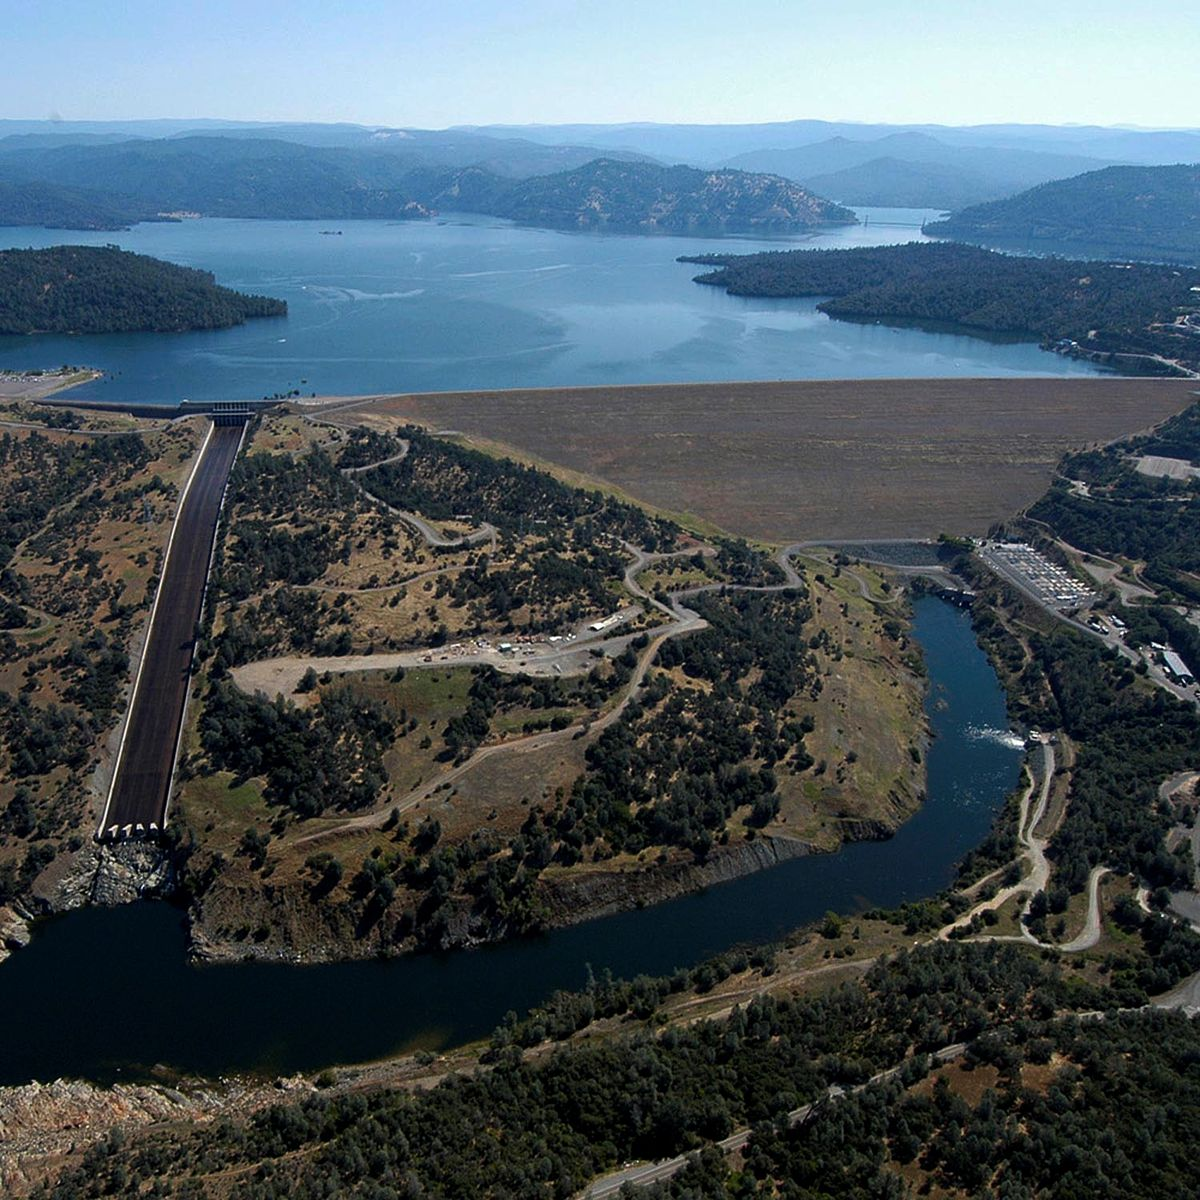 A huge mass of water behind the Oroville dam.